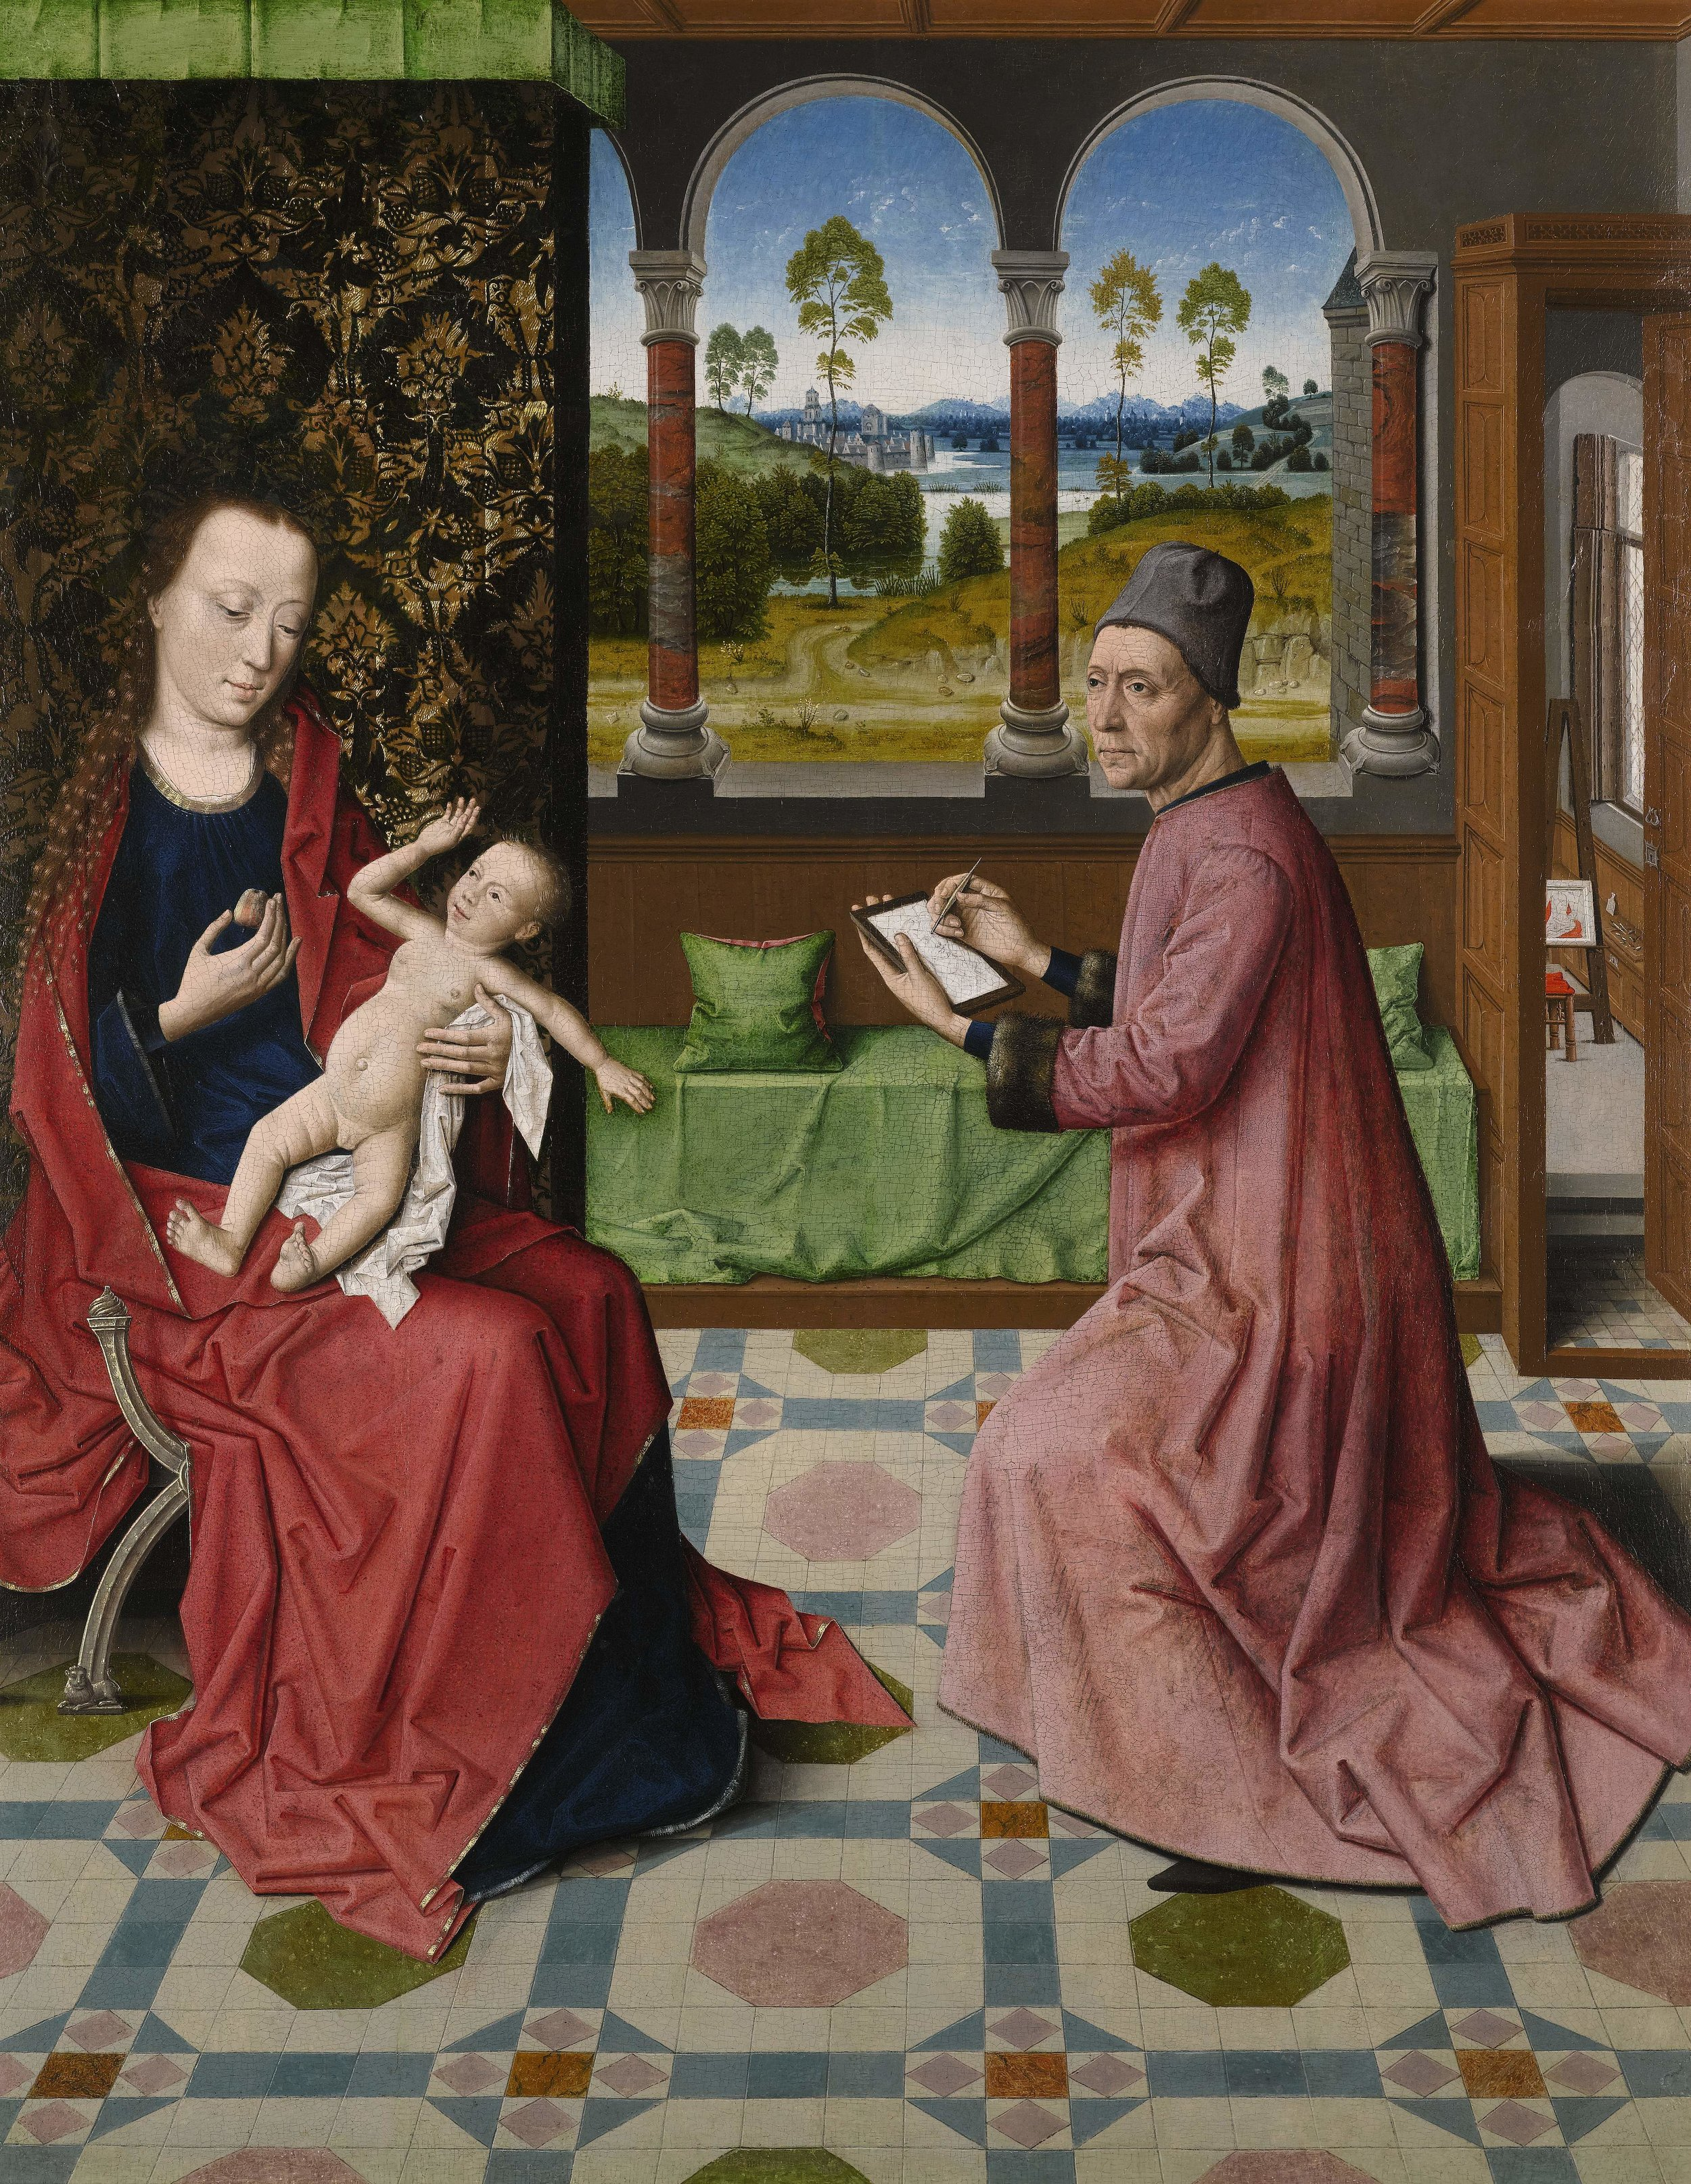 WORKSHOP OF DIERIC BOUTS, ST LUKE DRAWING THE VIRGIN ©DCMS